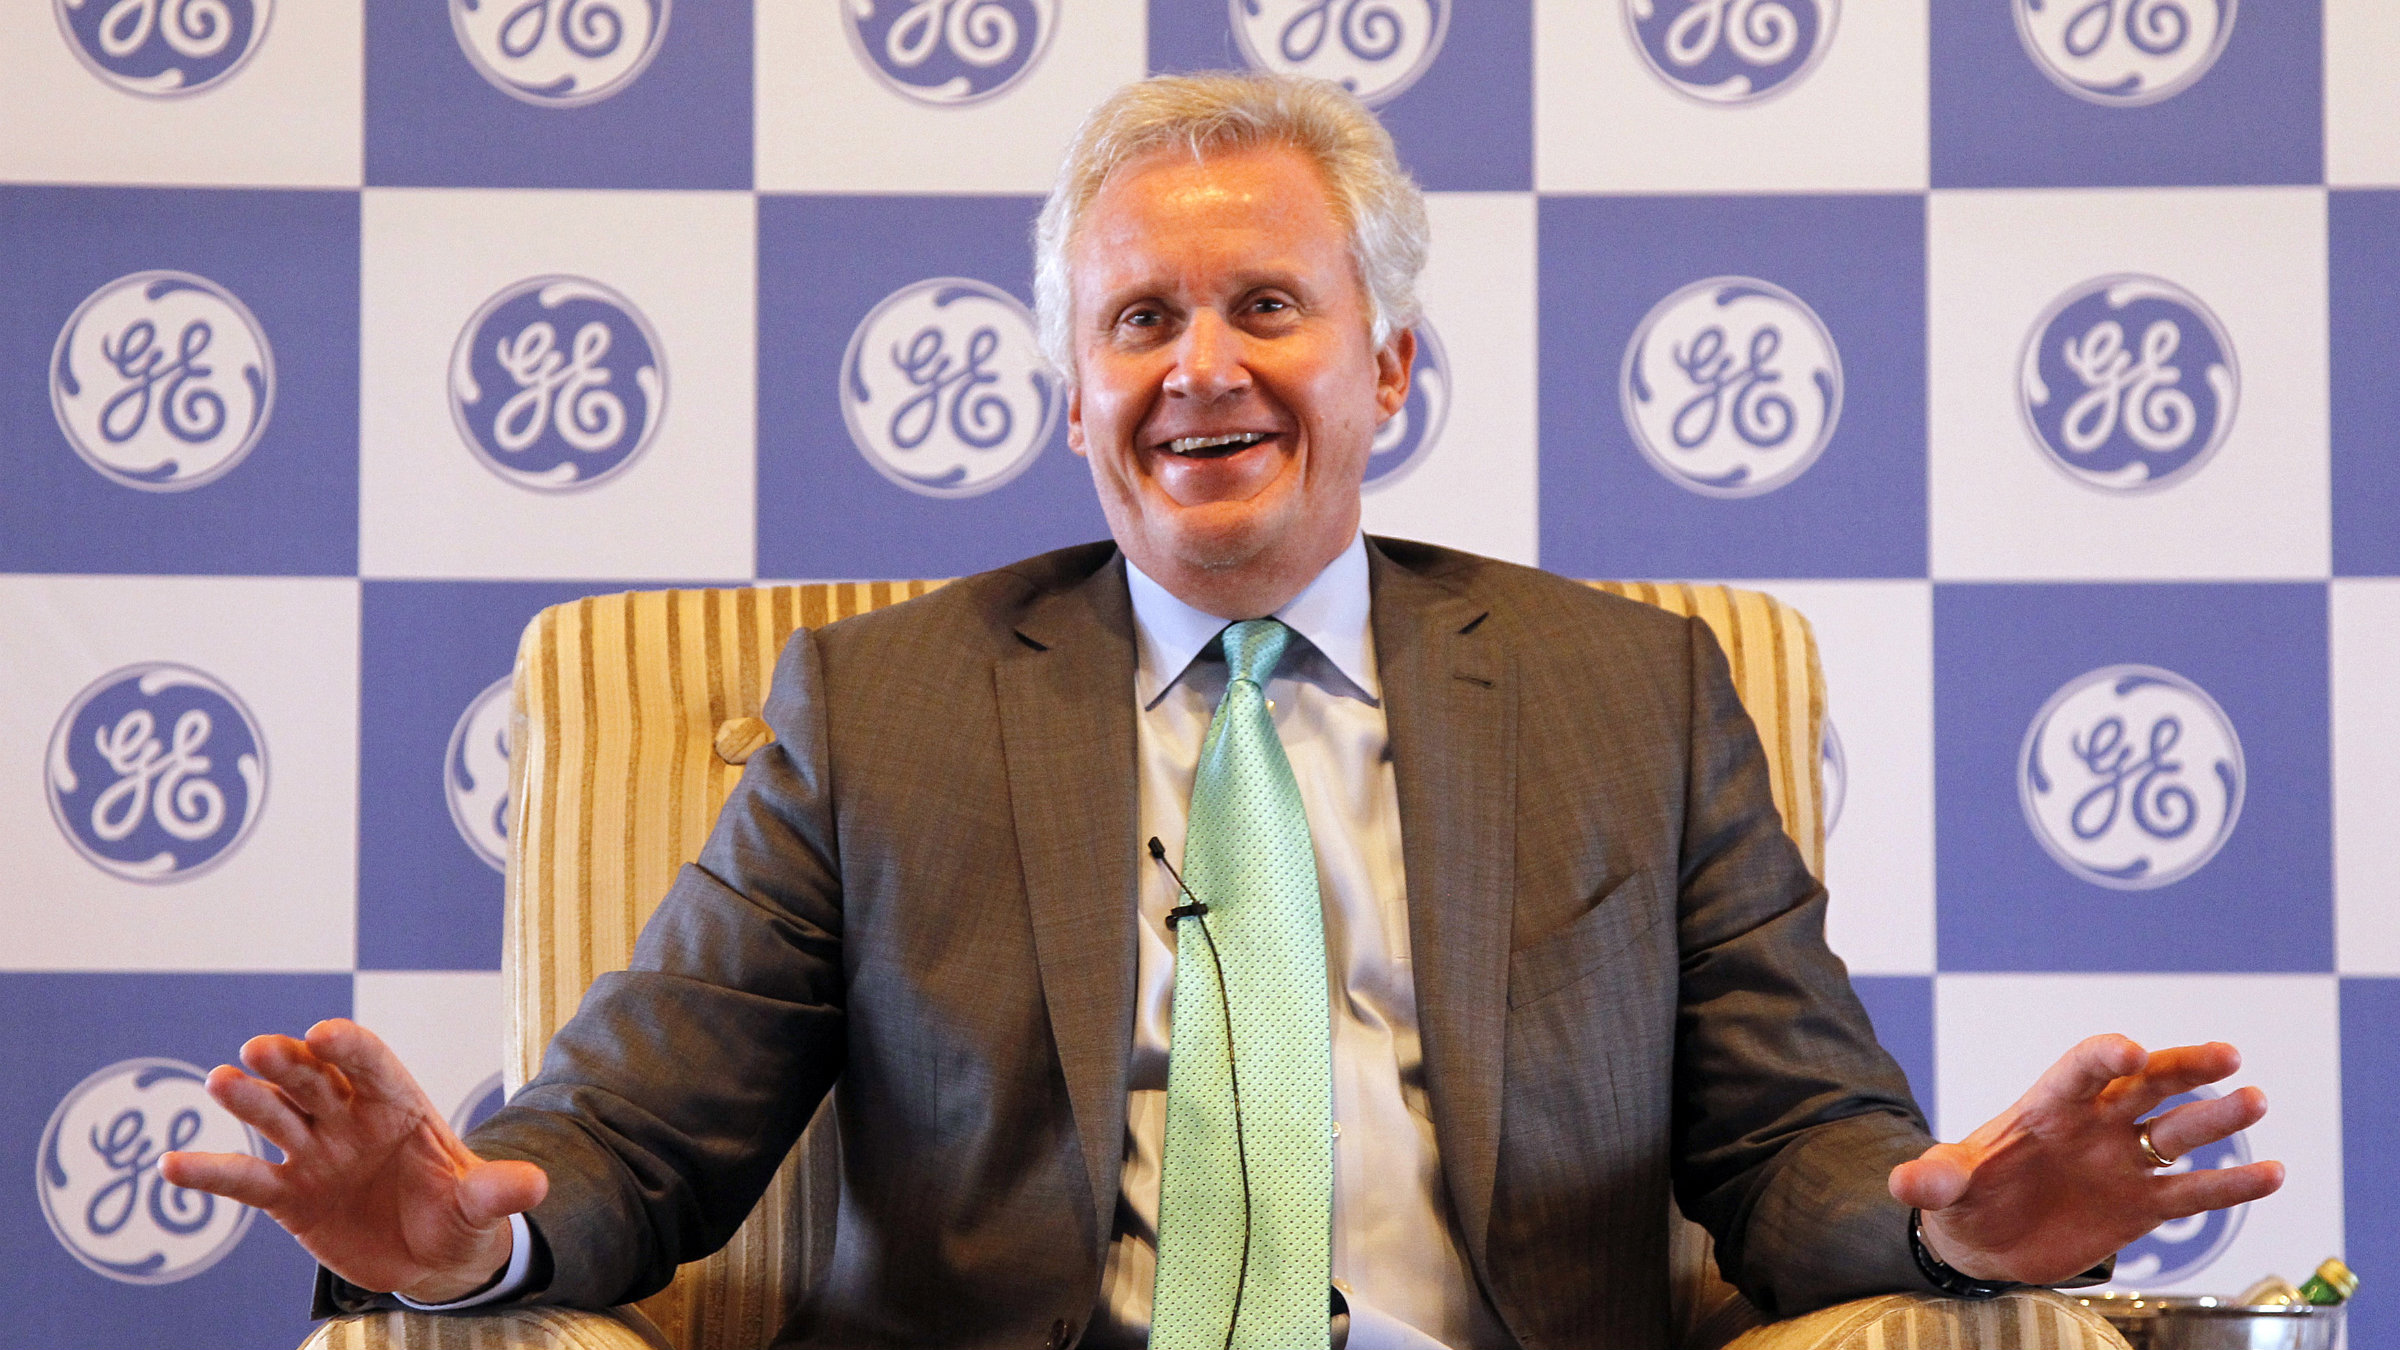 Under CEO Jeff Immelt, GE is investing in big data and 3D printing.